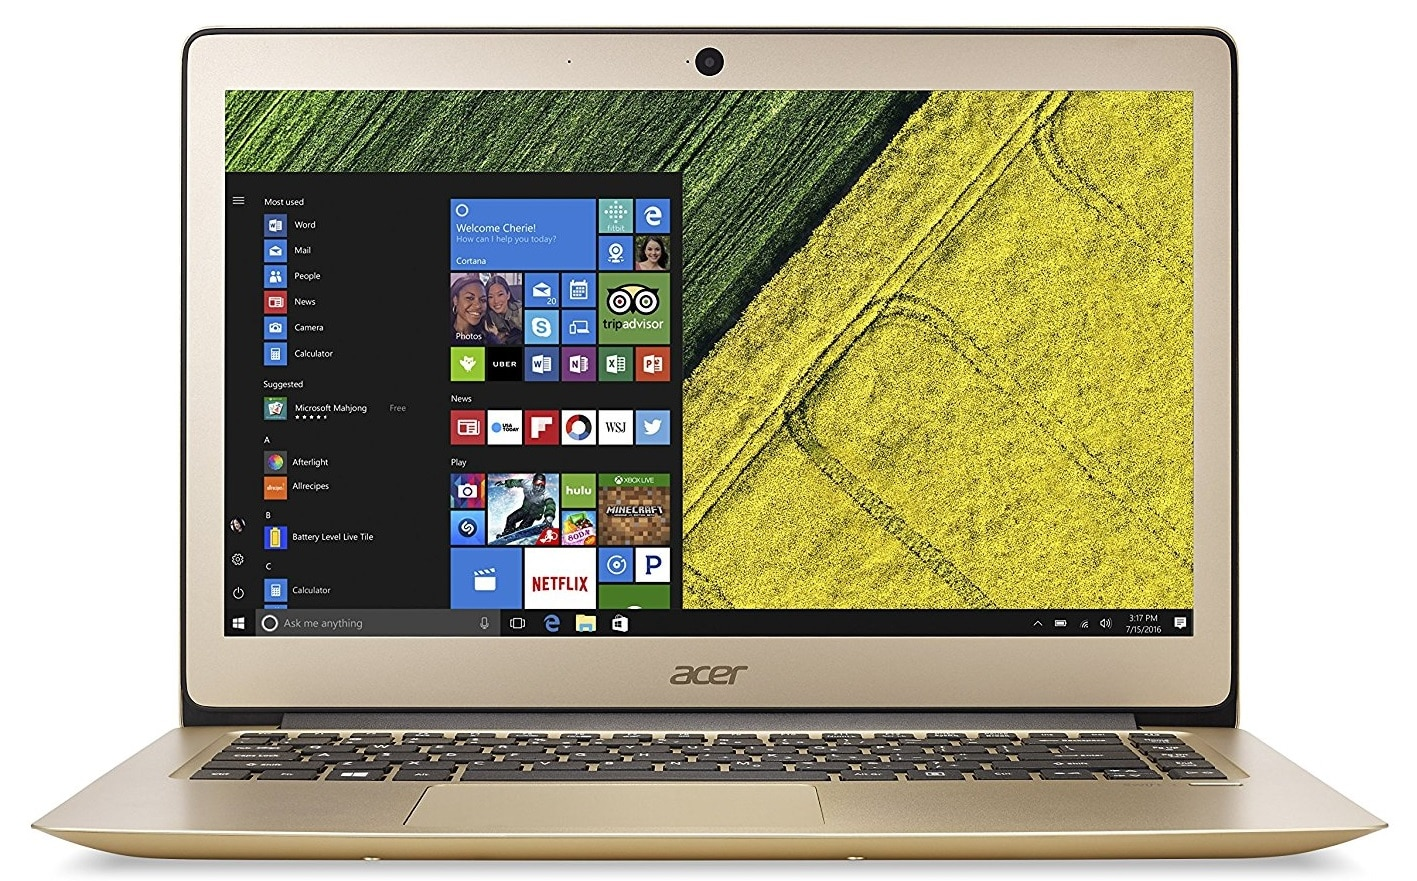 Acer Swift 3 best laptop under 700 pounds uk